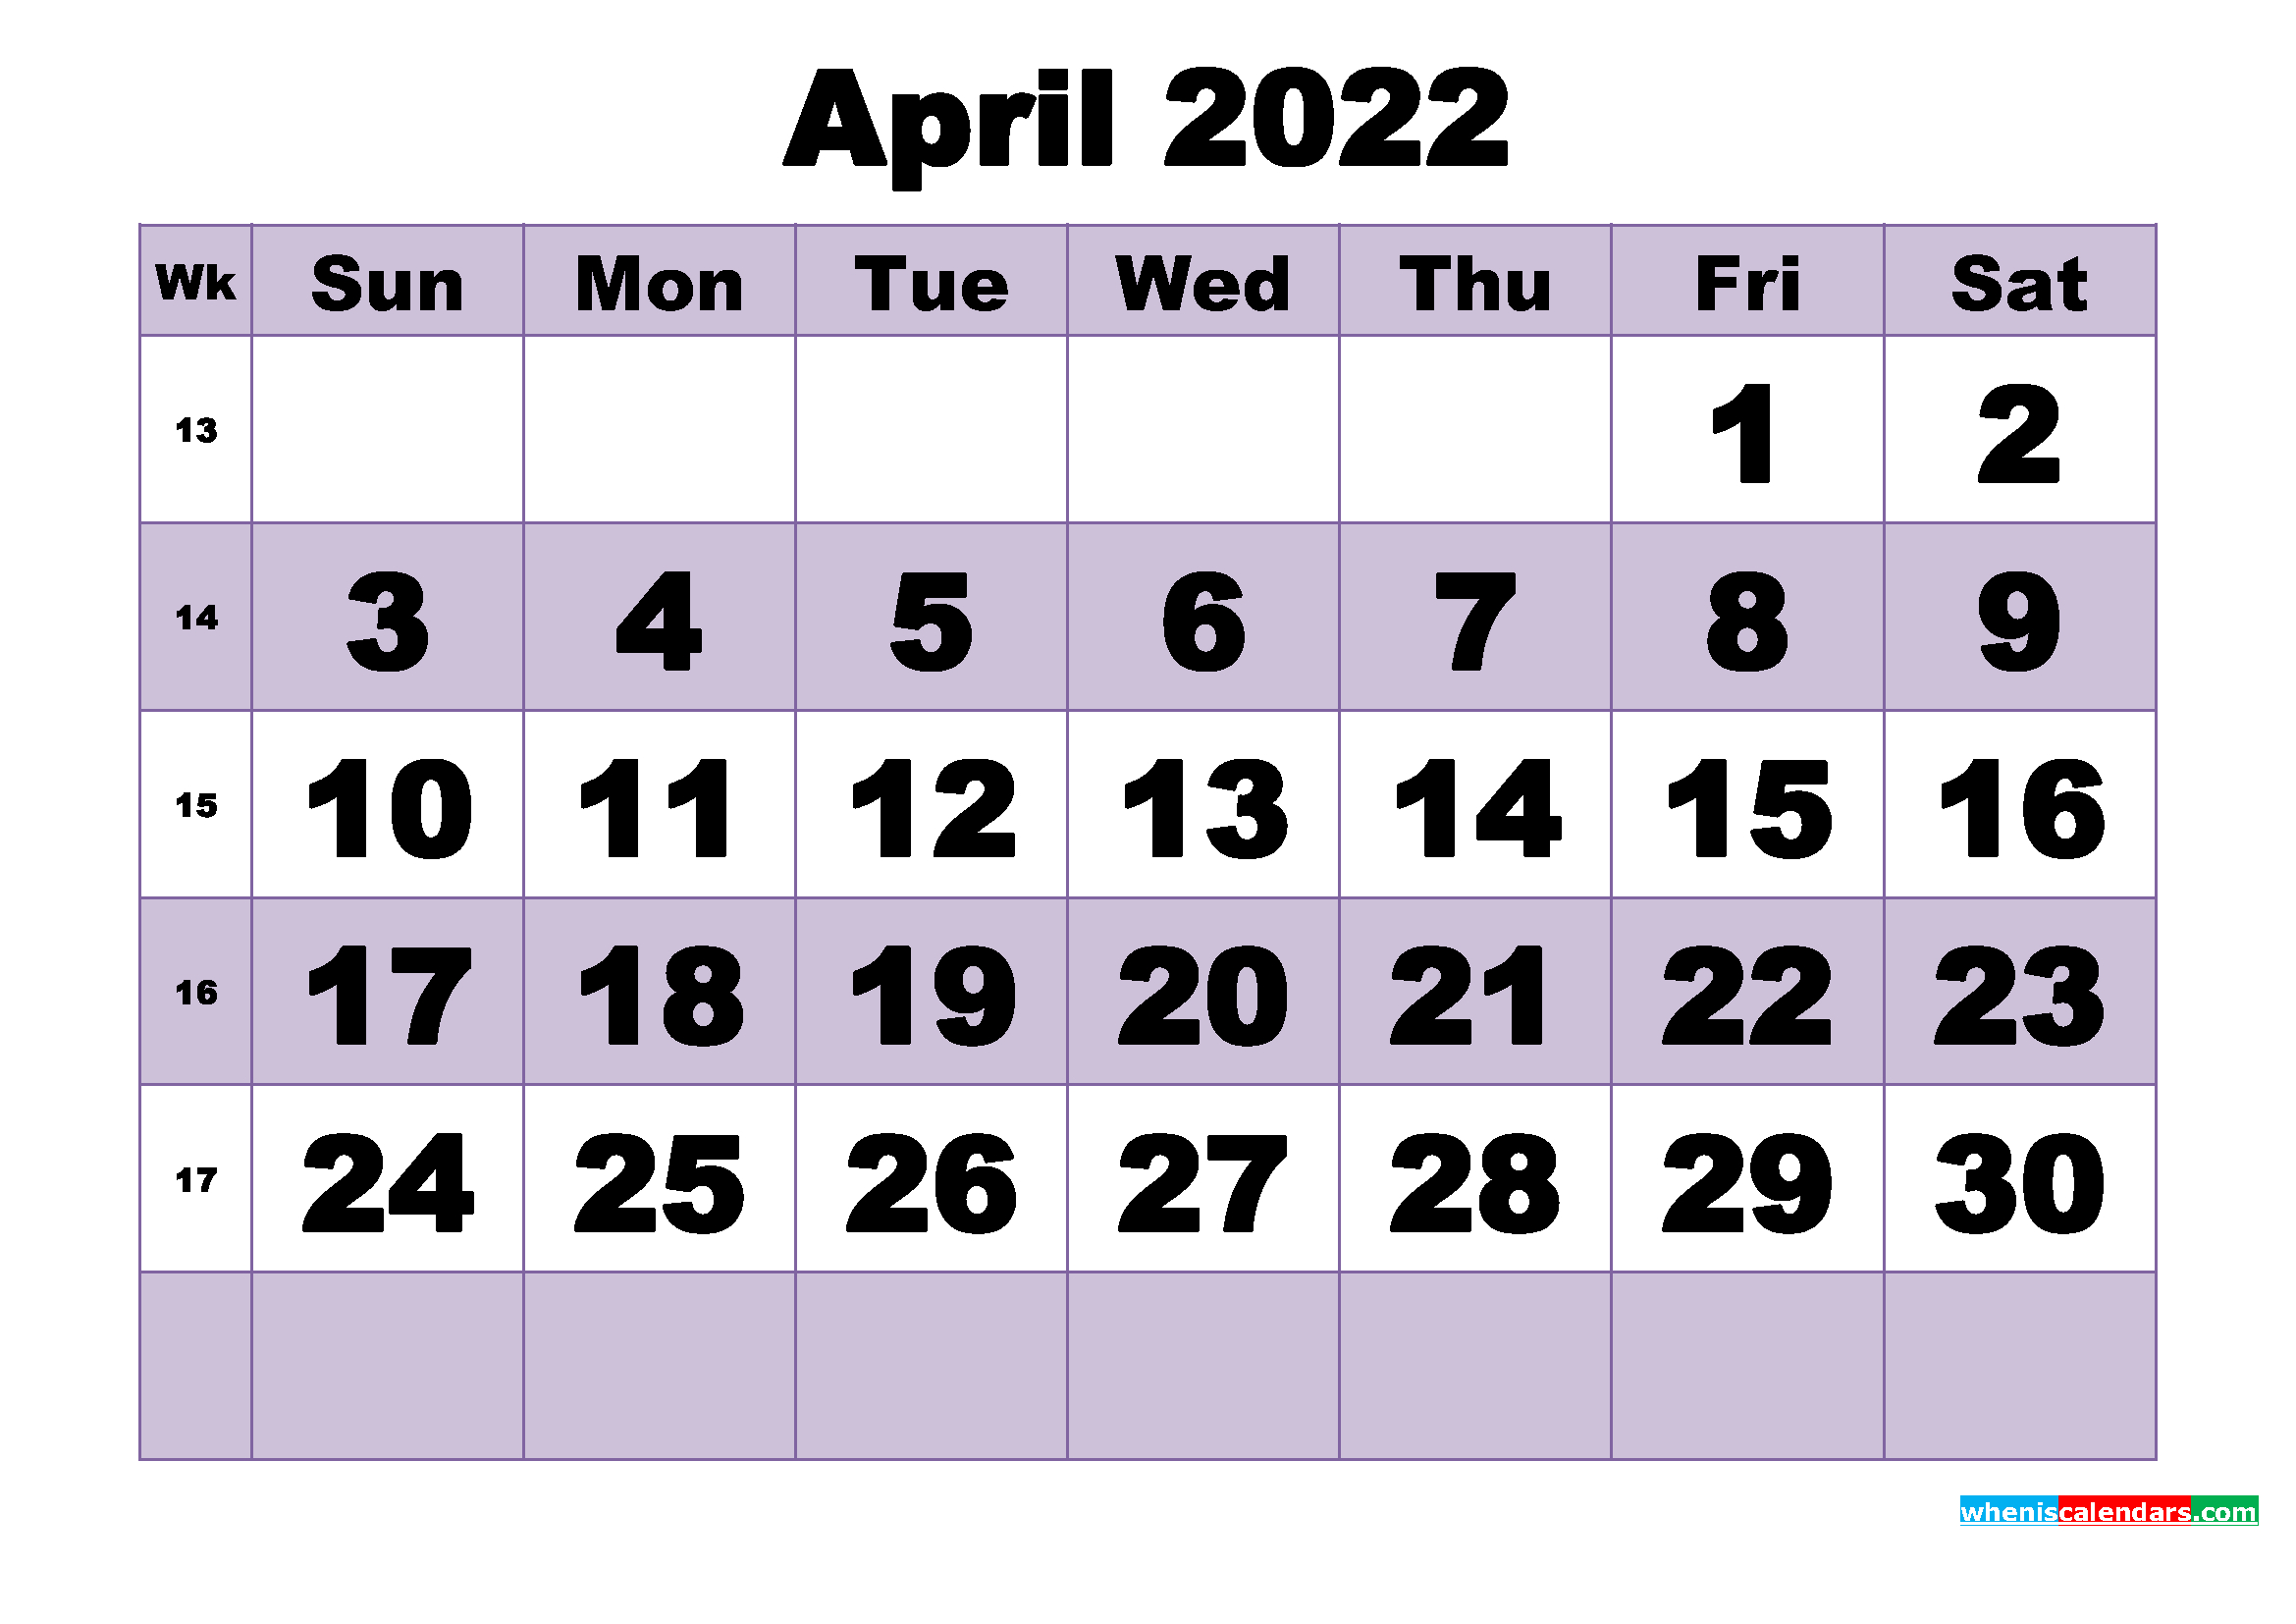 Free April 2022 Printable Monthly Calendar Template - Free with regard to Blank Calendar Printable April 2022